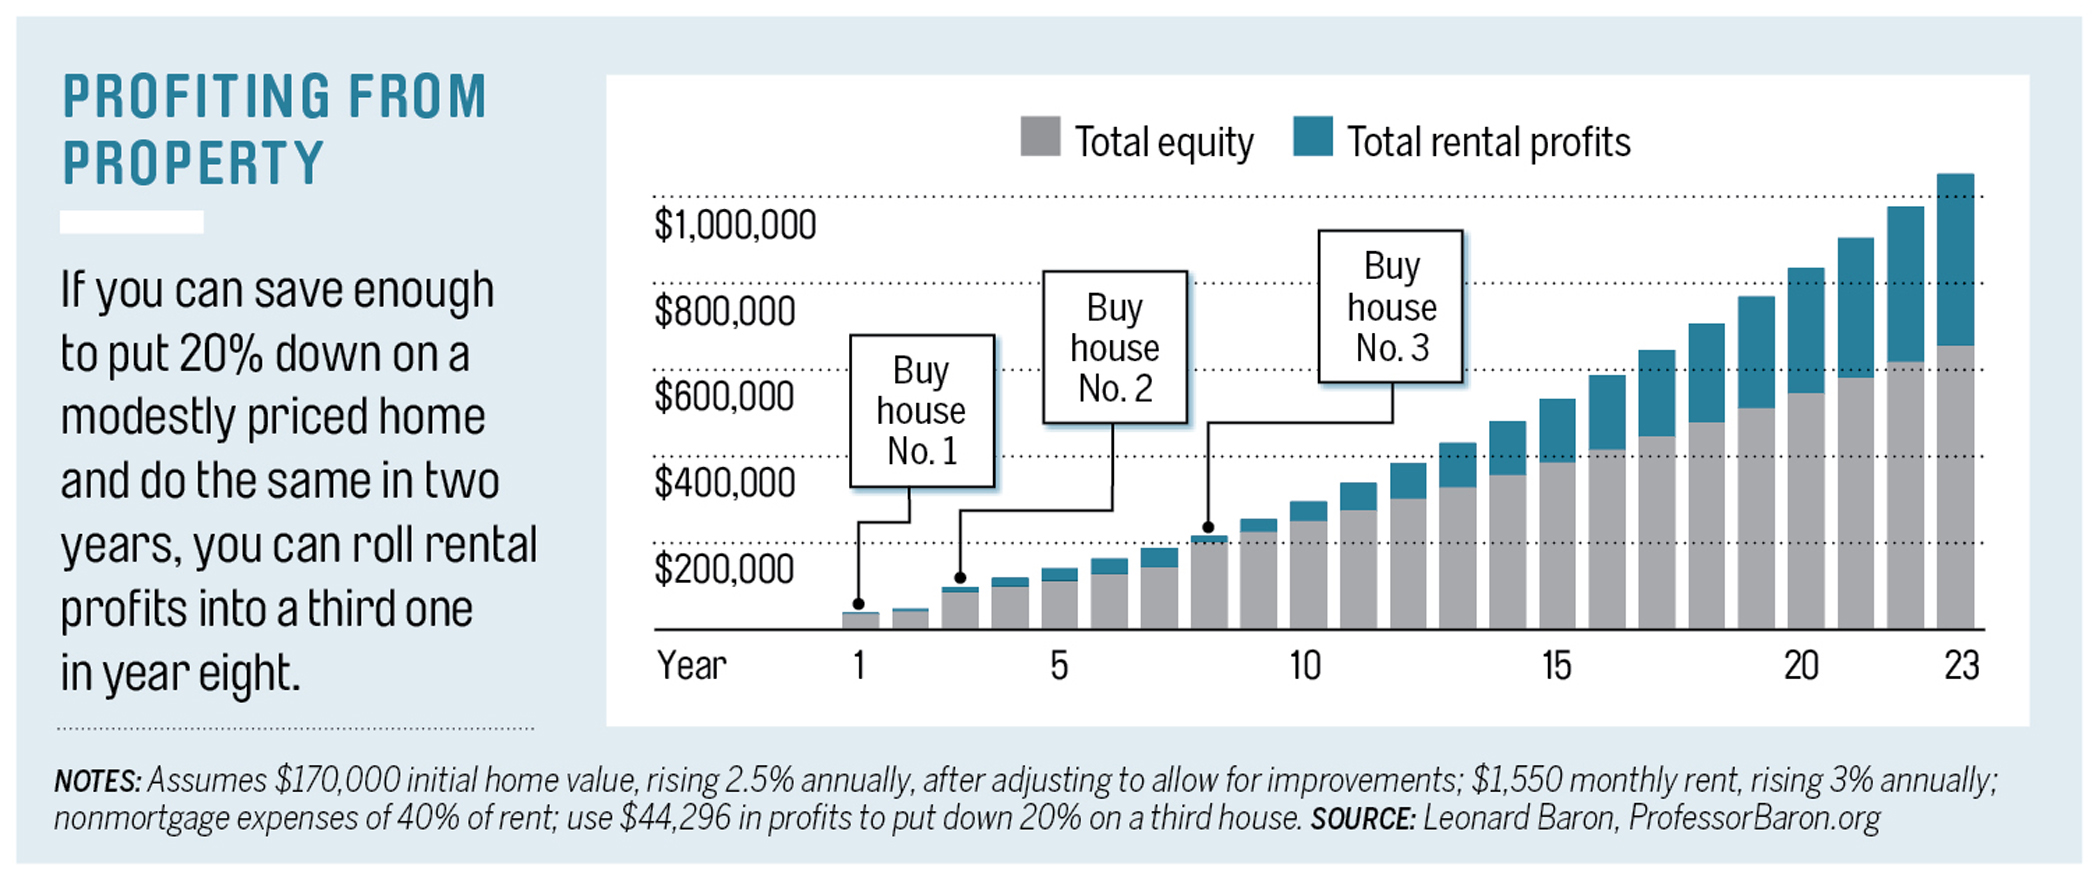 profiting from property